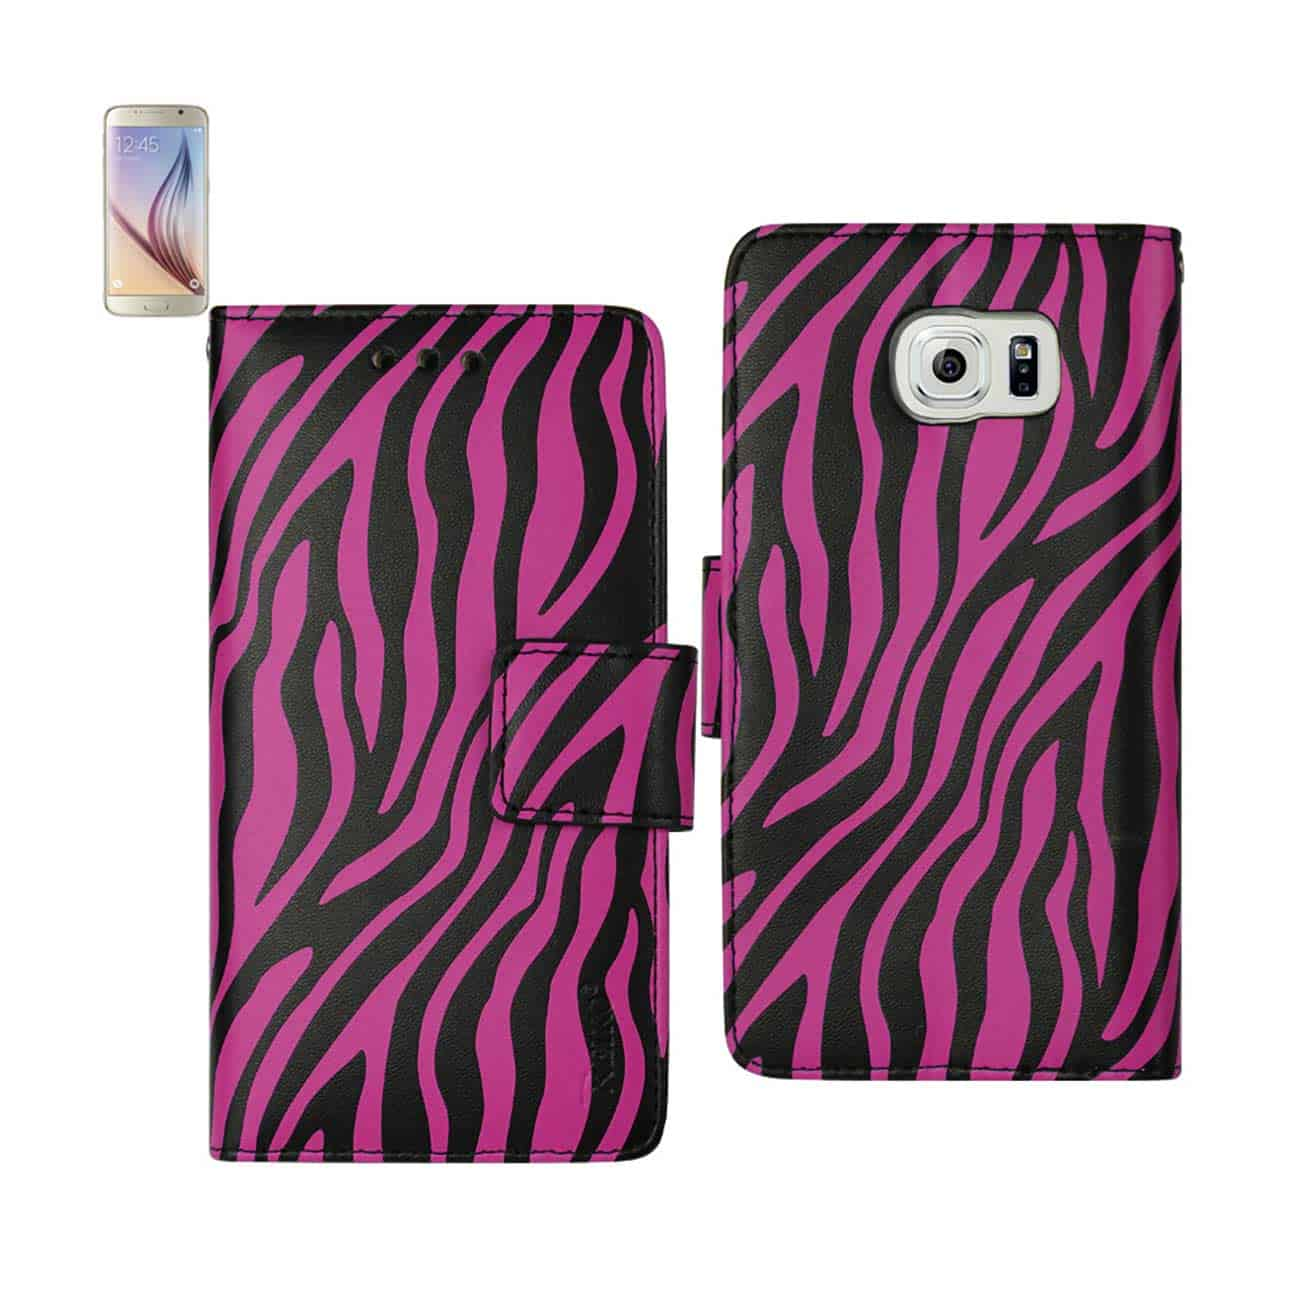 SAMSUNG GALAXY S6 EDGE 3-IN-1 ANIMAL ZEBRA PRINT WALLET CASE IN HOT PINK